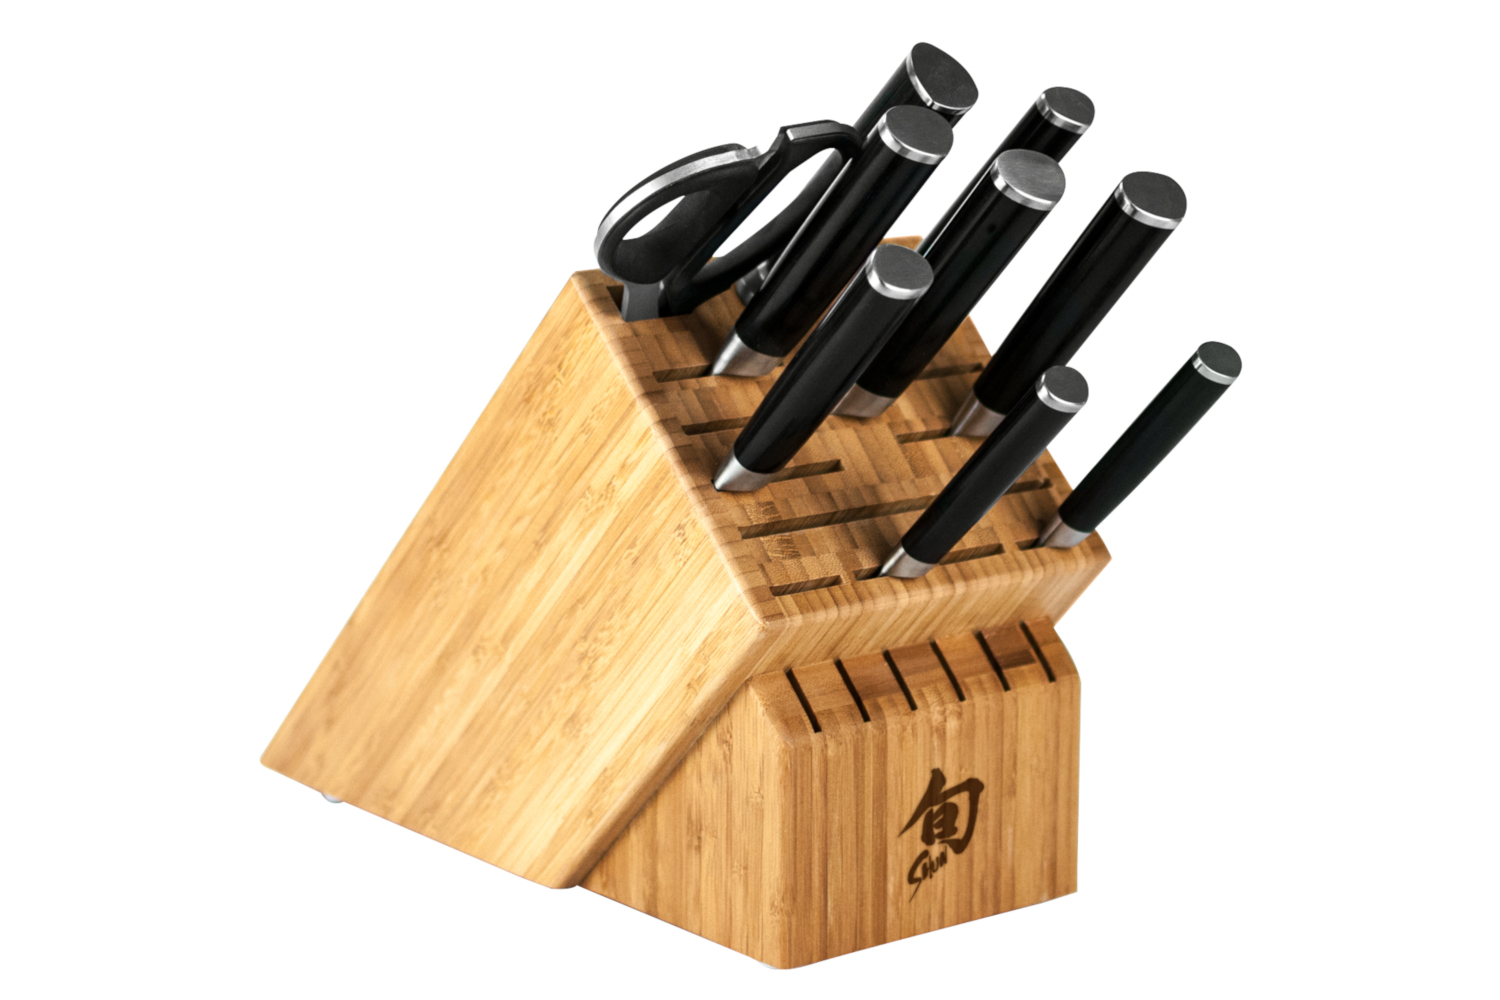 Shun Classic 10 Piece Knife Block Set